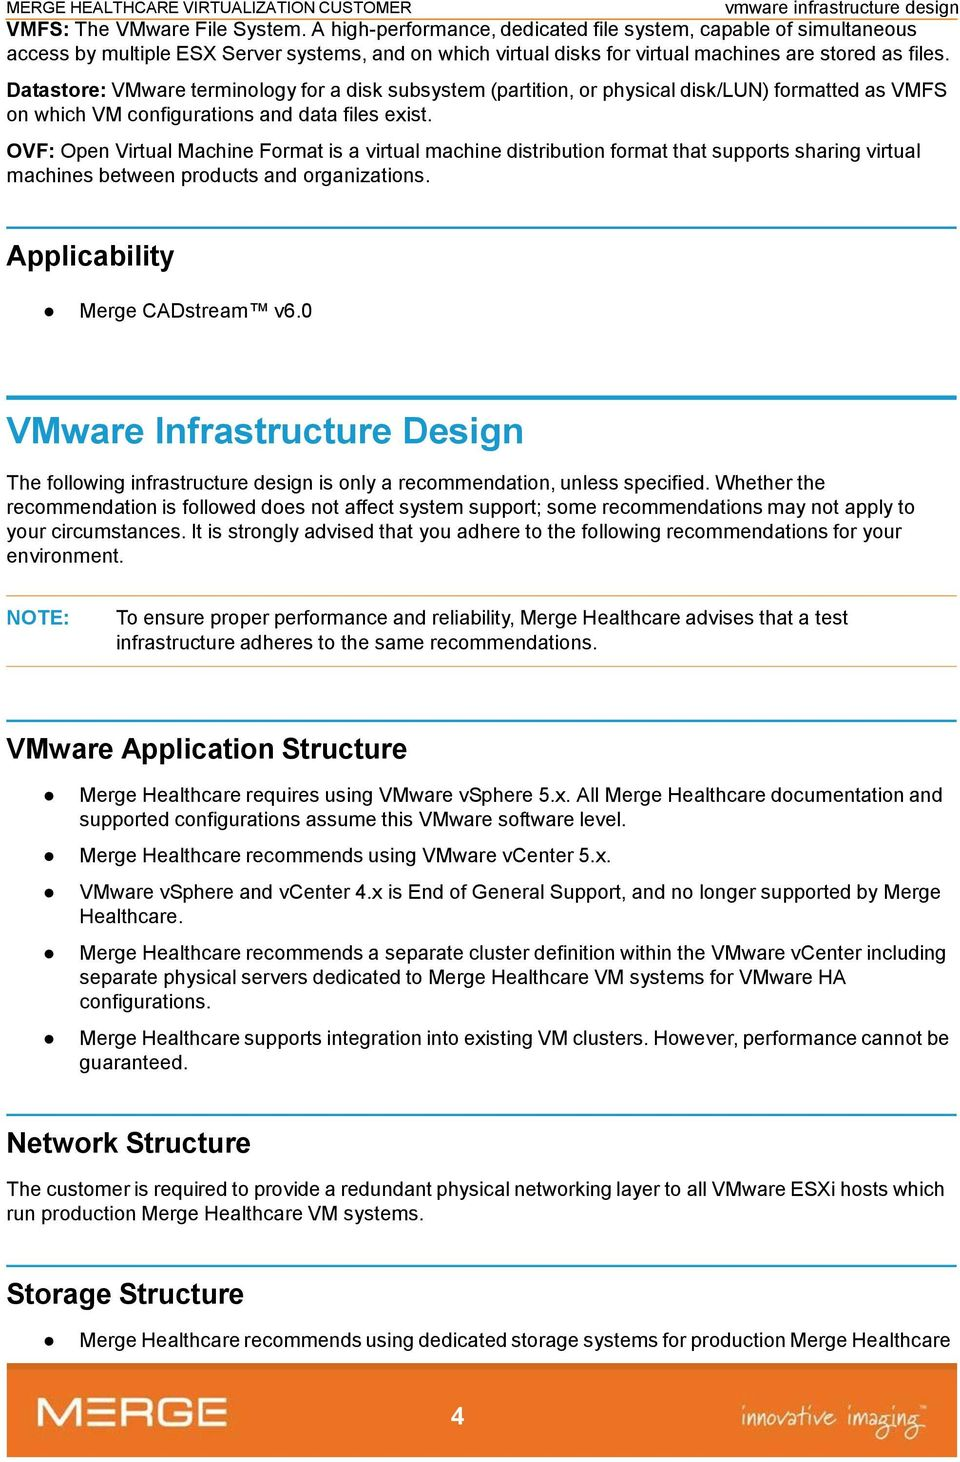 Datastore: VMware terminology for a disk subsystem (partition, or physical disk/lun) formatted as VMFS on which VM configurations and data files exist.